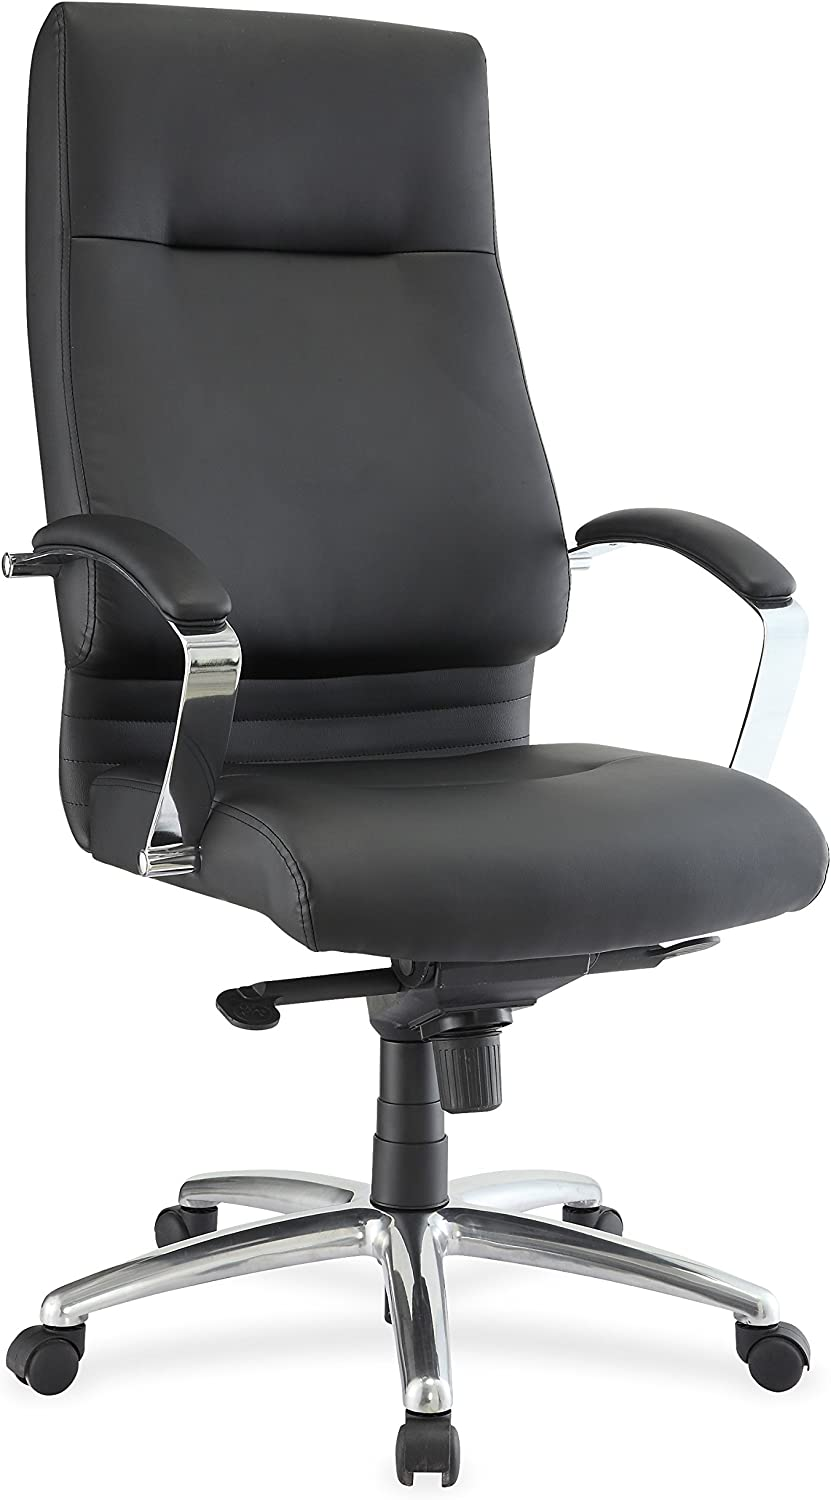 Lorell Challenge the lowest price of Japan Indefinitely Executive Black Chair